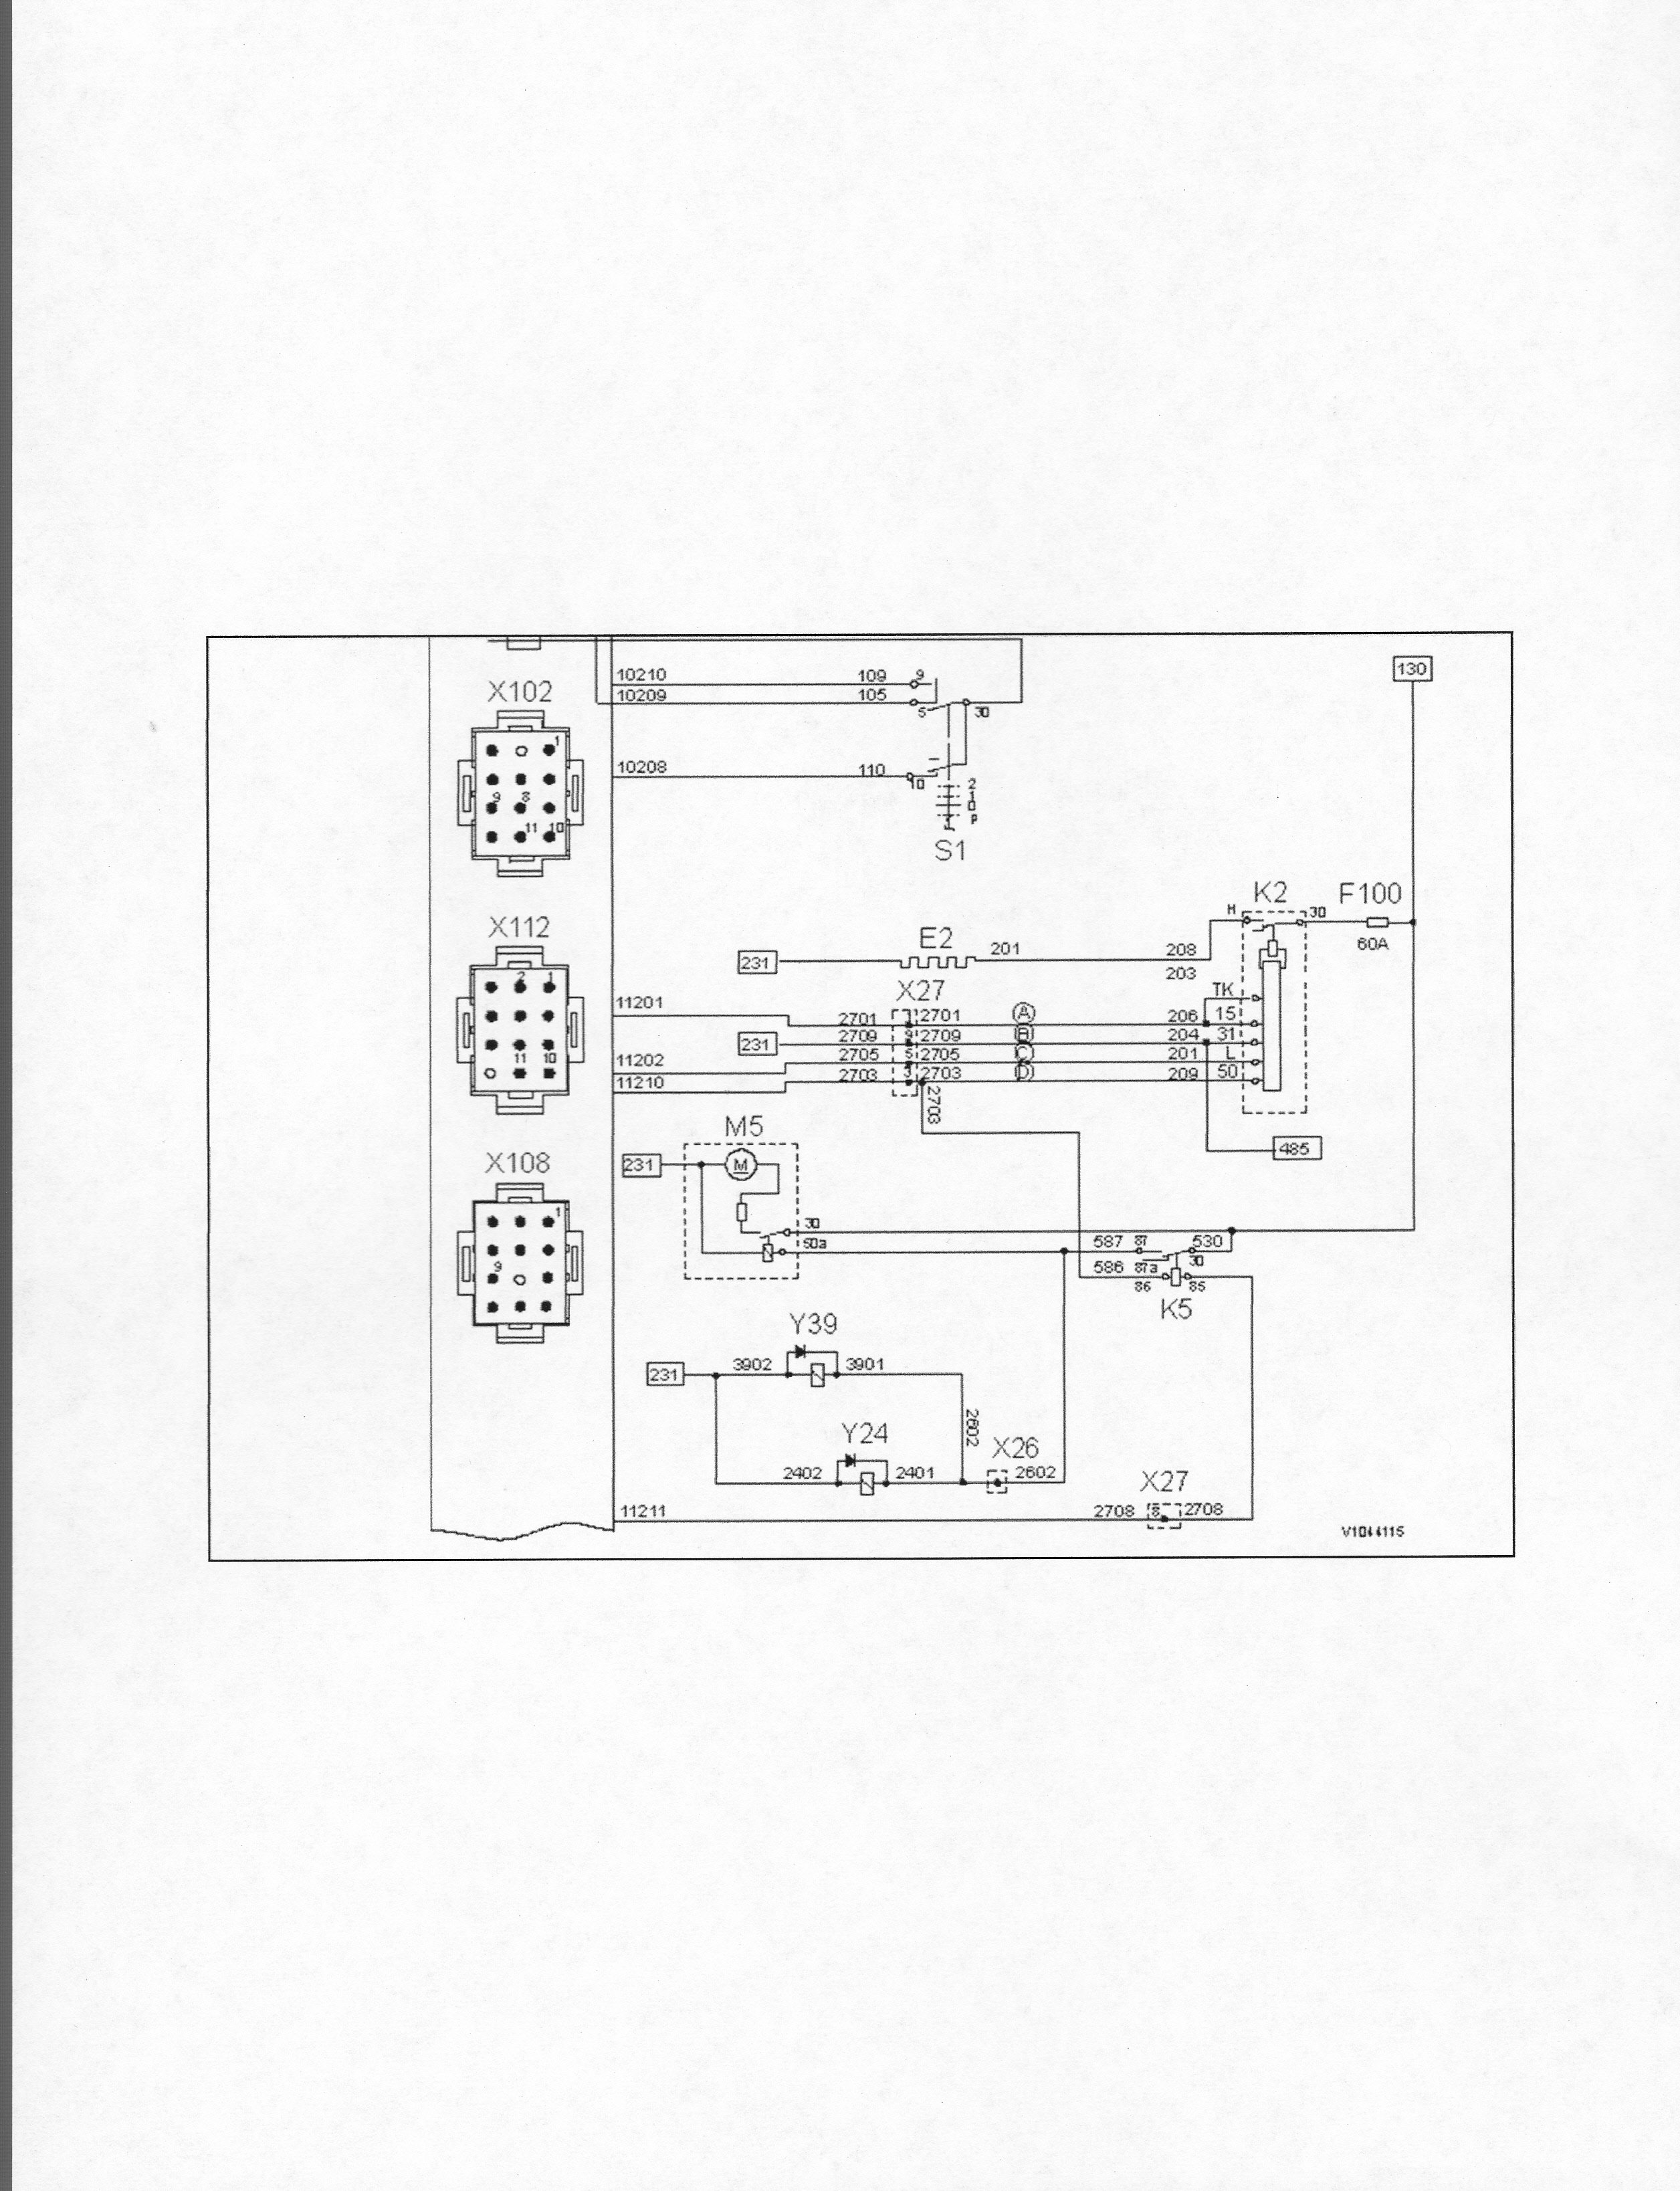 Volvo Loader Schematic Related Keywords Suggestions Wx64 Wiring Diagram 1999 L30 Diagraml